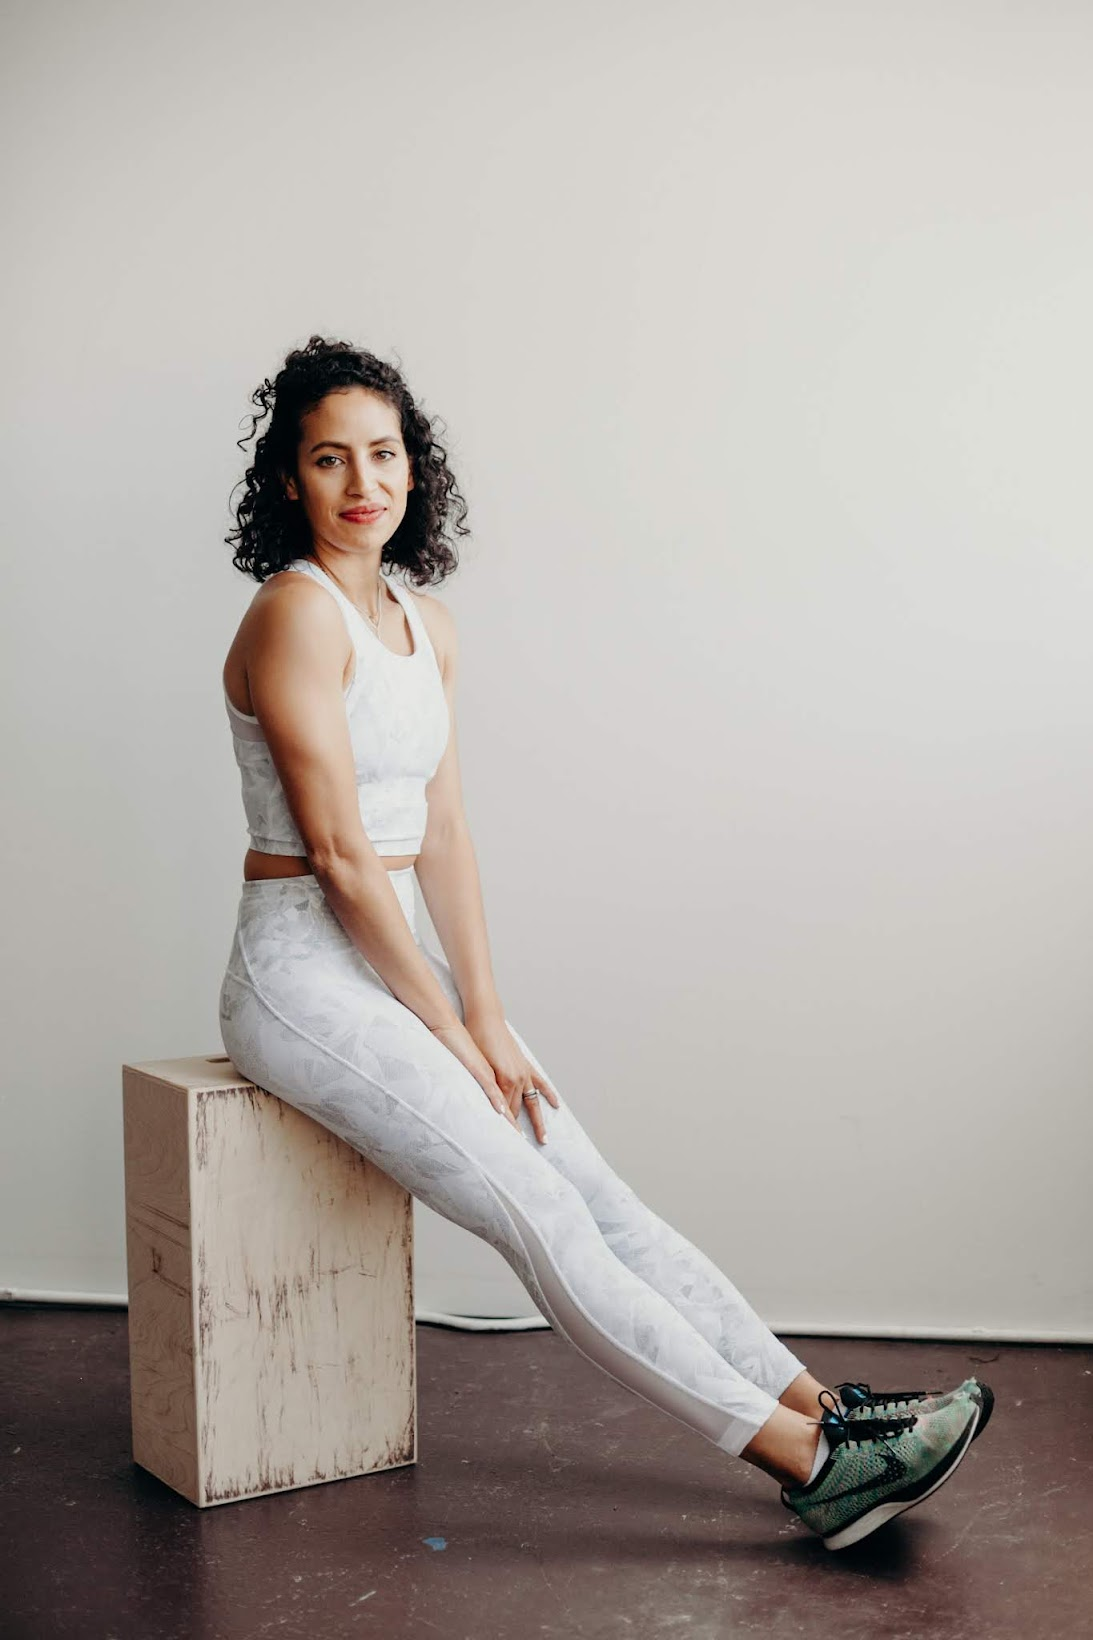 body image, body positivity, flywheel, workout gear, short curly hair